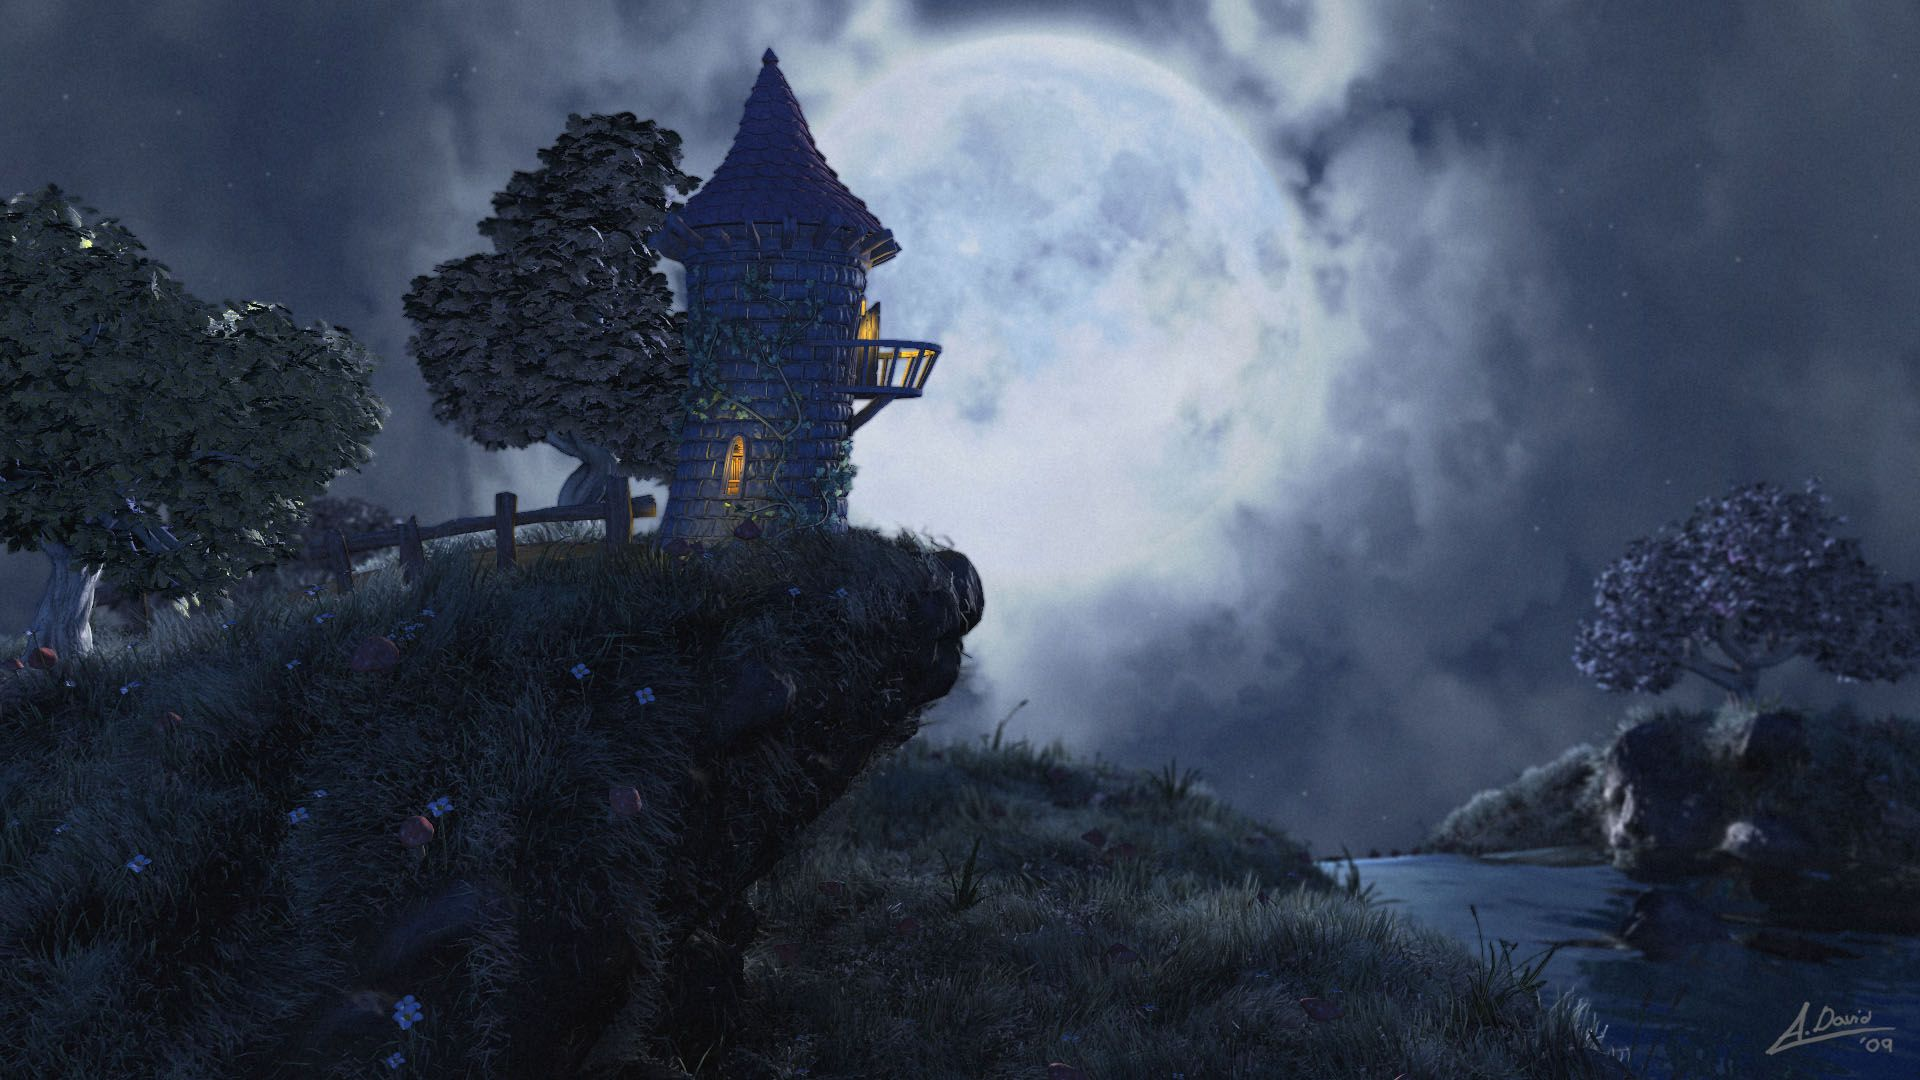 Unduh 80 Background Art Fantasy HD Terbaru